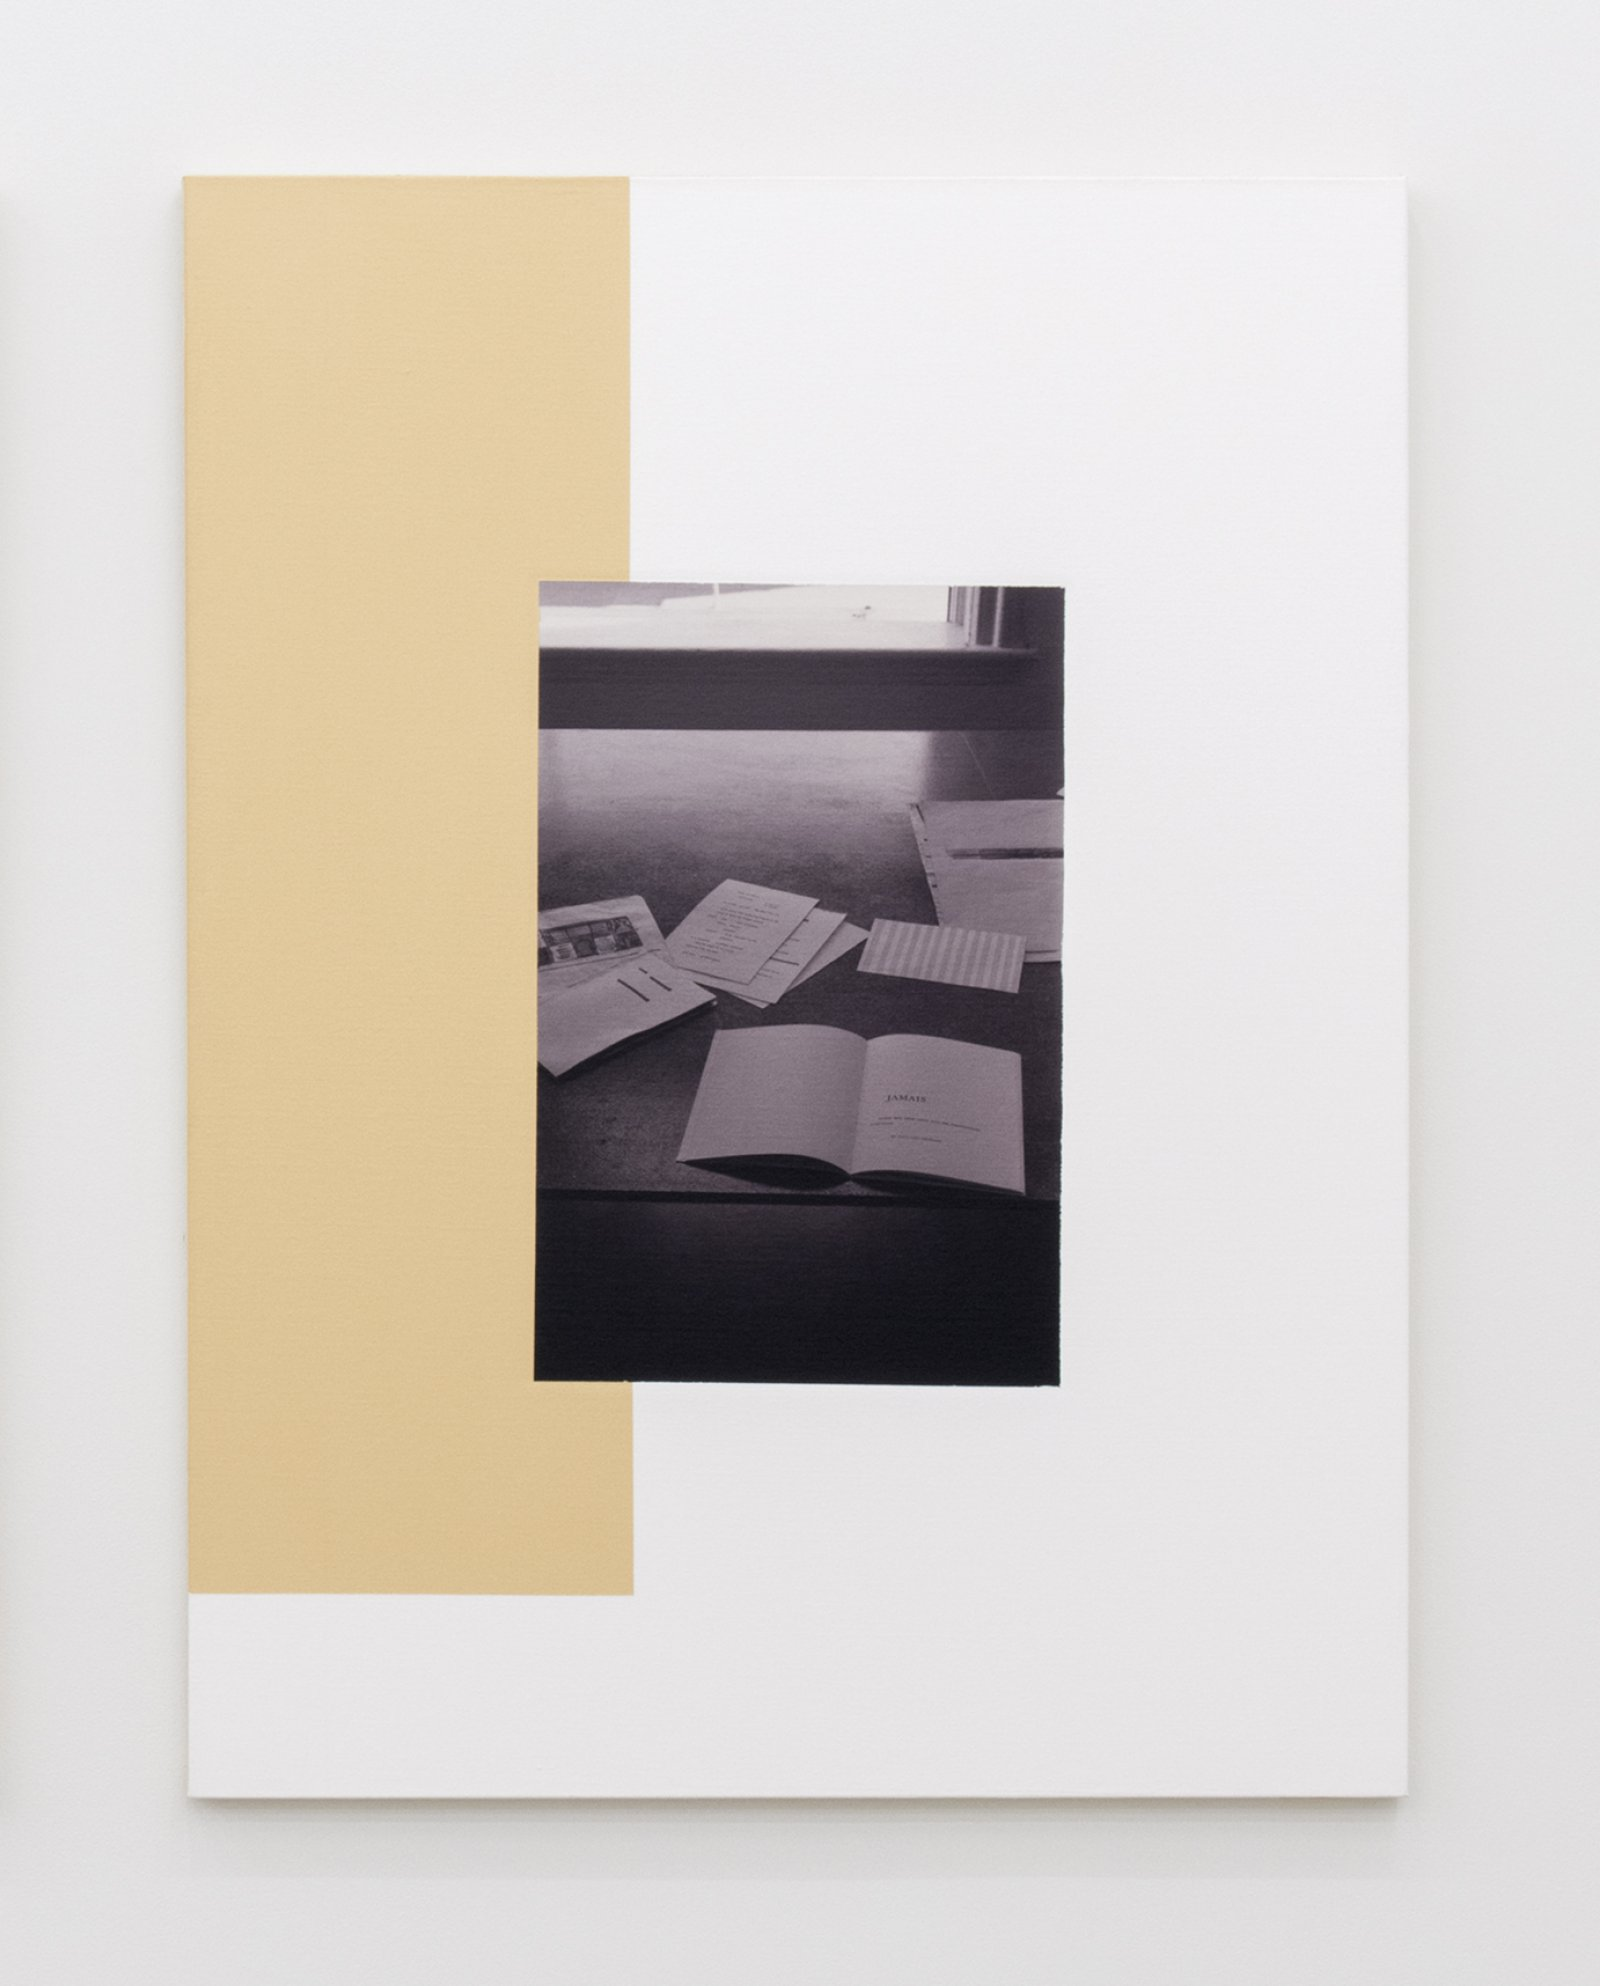 Ian Wallace,The Table (Image/Text) I, II(detail), 1979–2007, photolaminate and acrylic on canvas, 48 x 72 in. (122 x 183 cm)